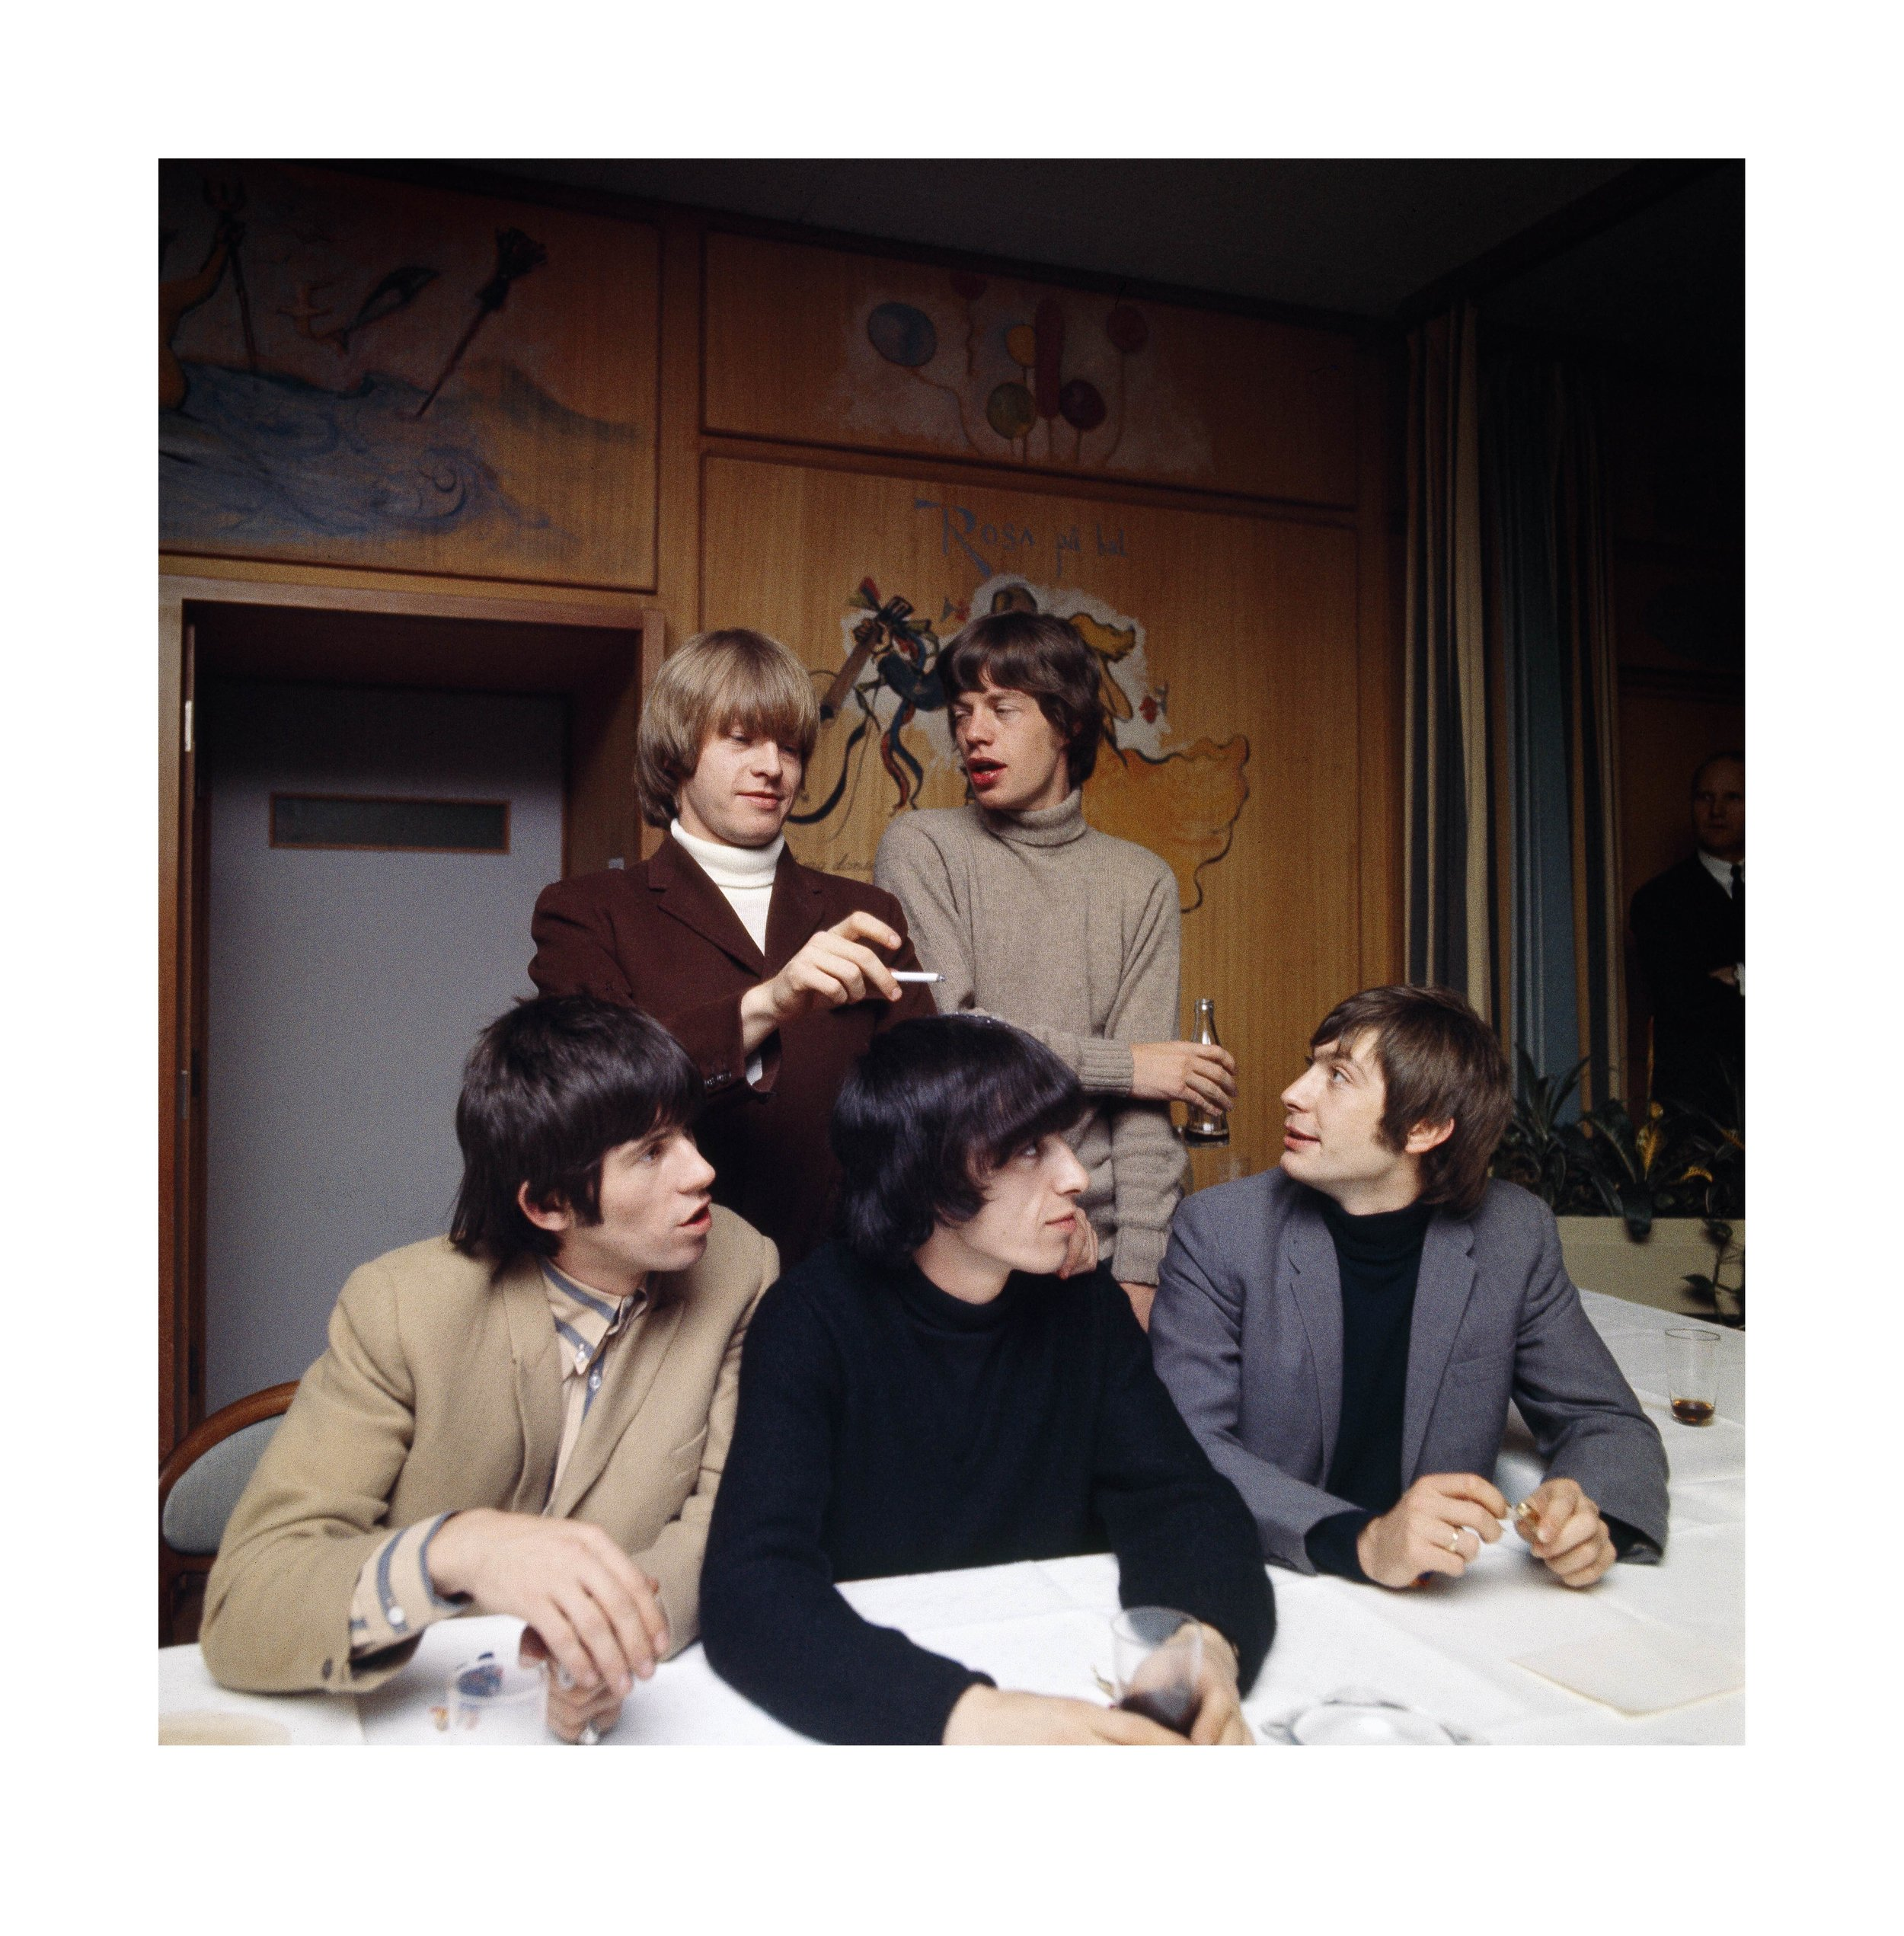 The Rolling Stones by Bent Rej